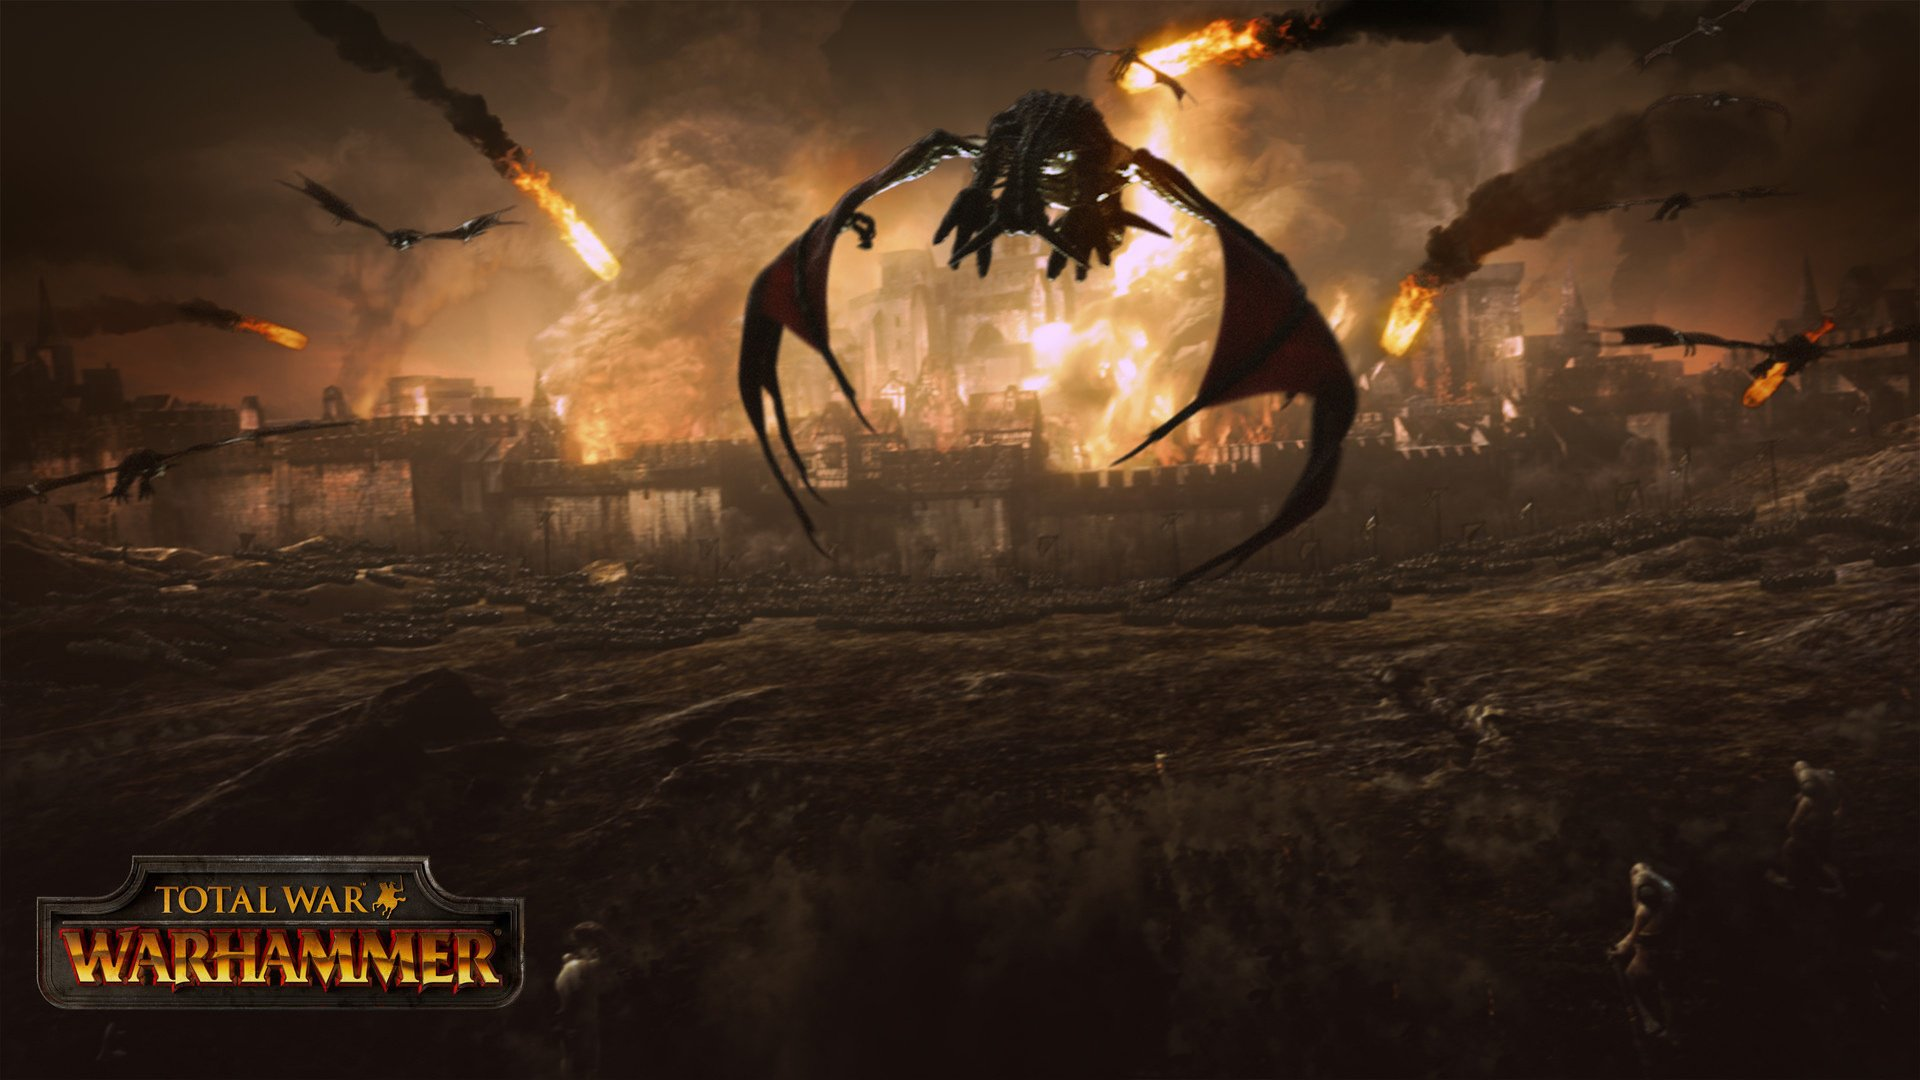 Total War: Warhammer HD pictures